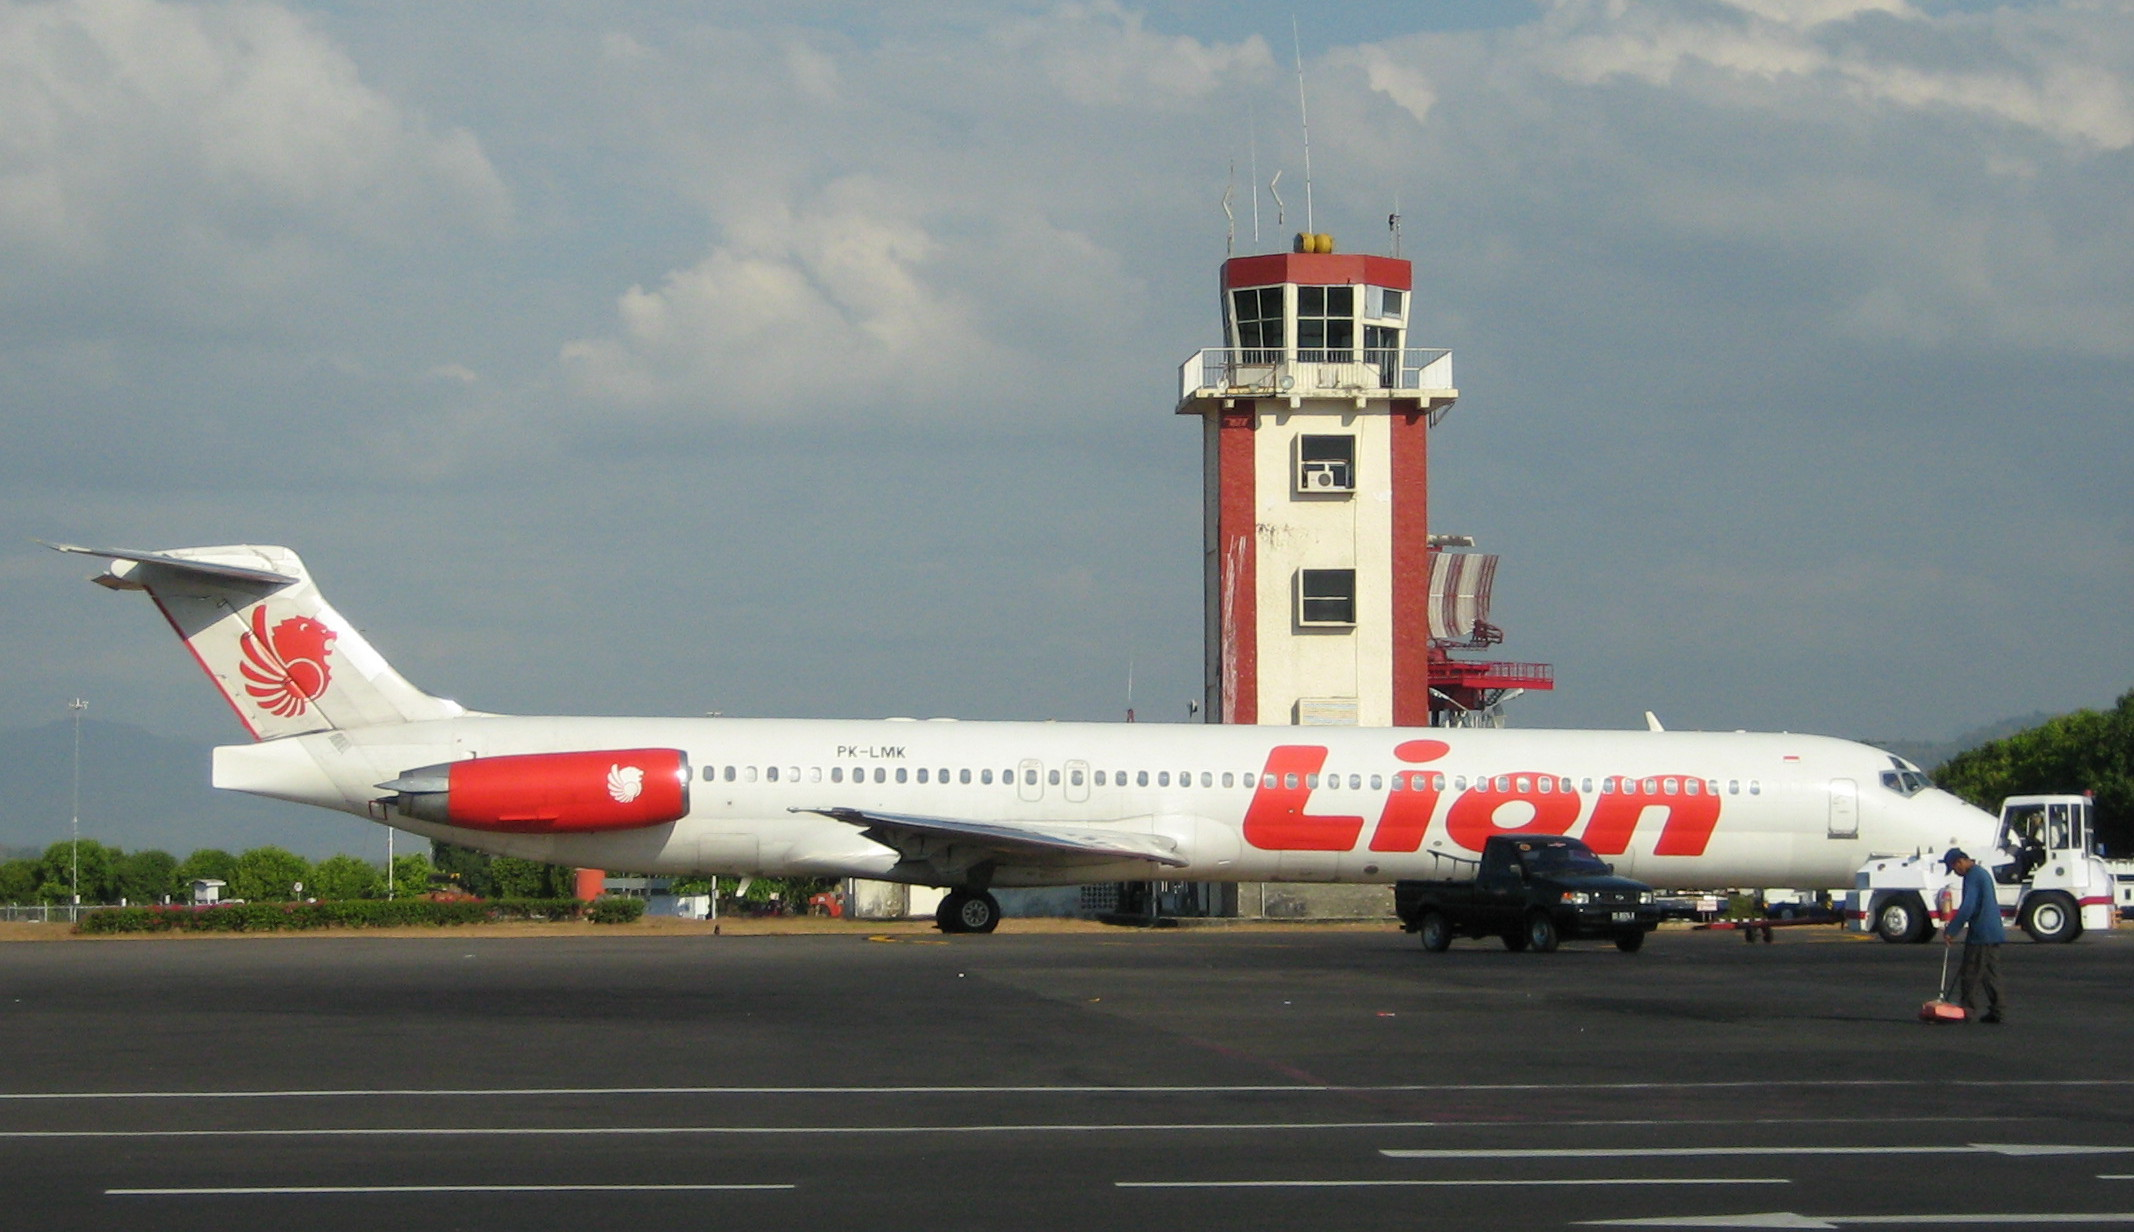 Thai Lion Air selling tickets, expecting global flights to resume in August